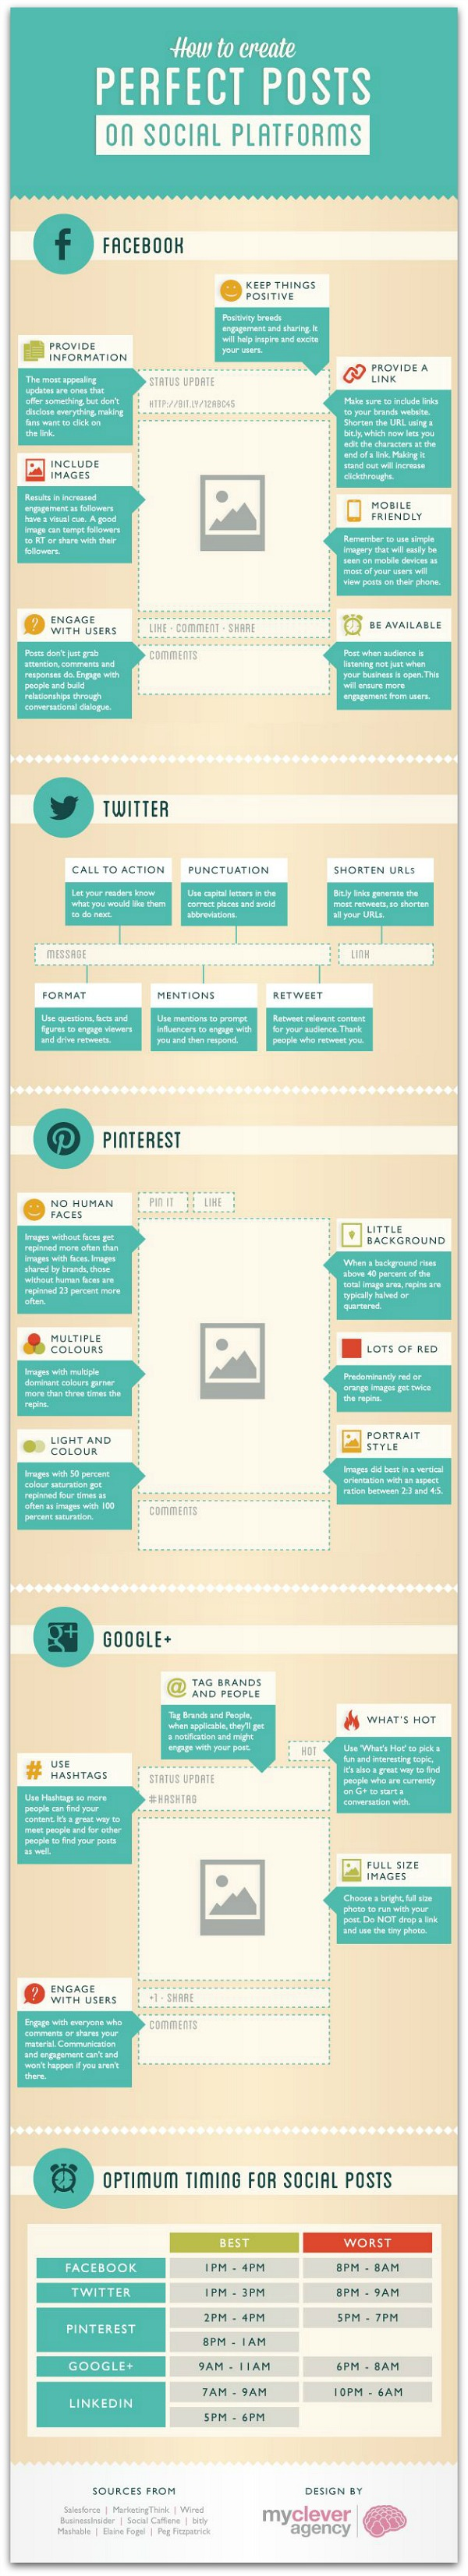 Perfect_Facebook_Posts_Infographic